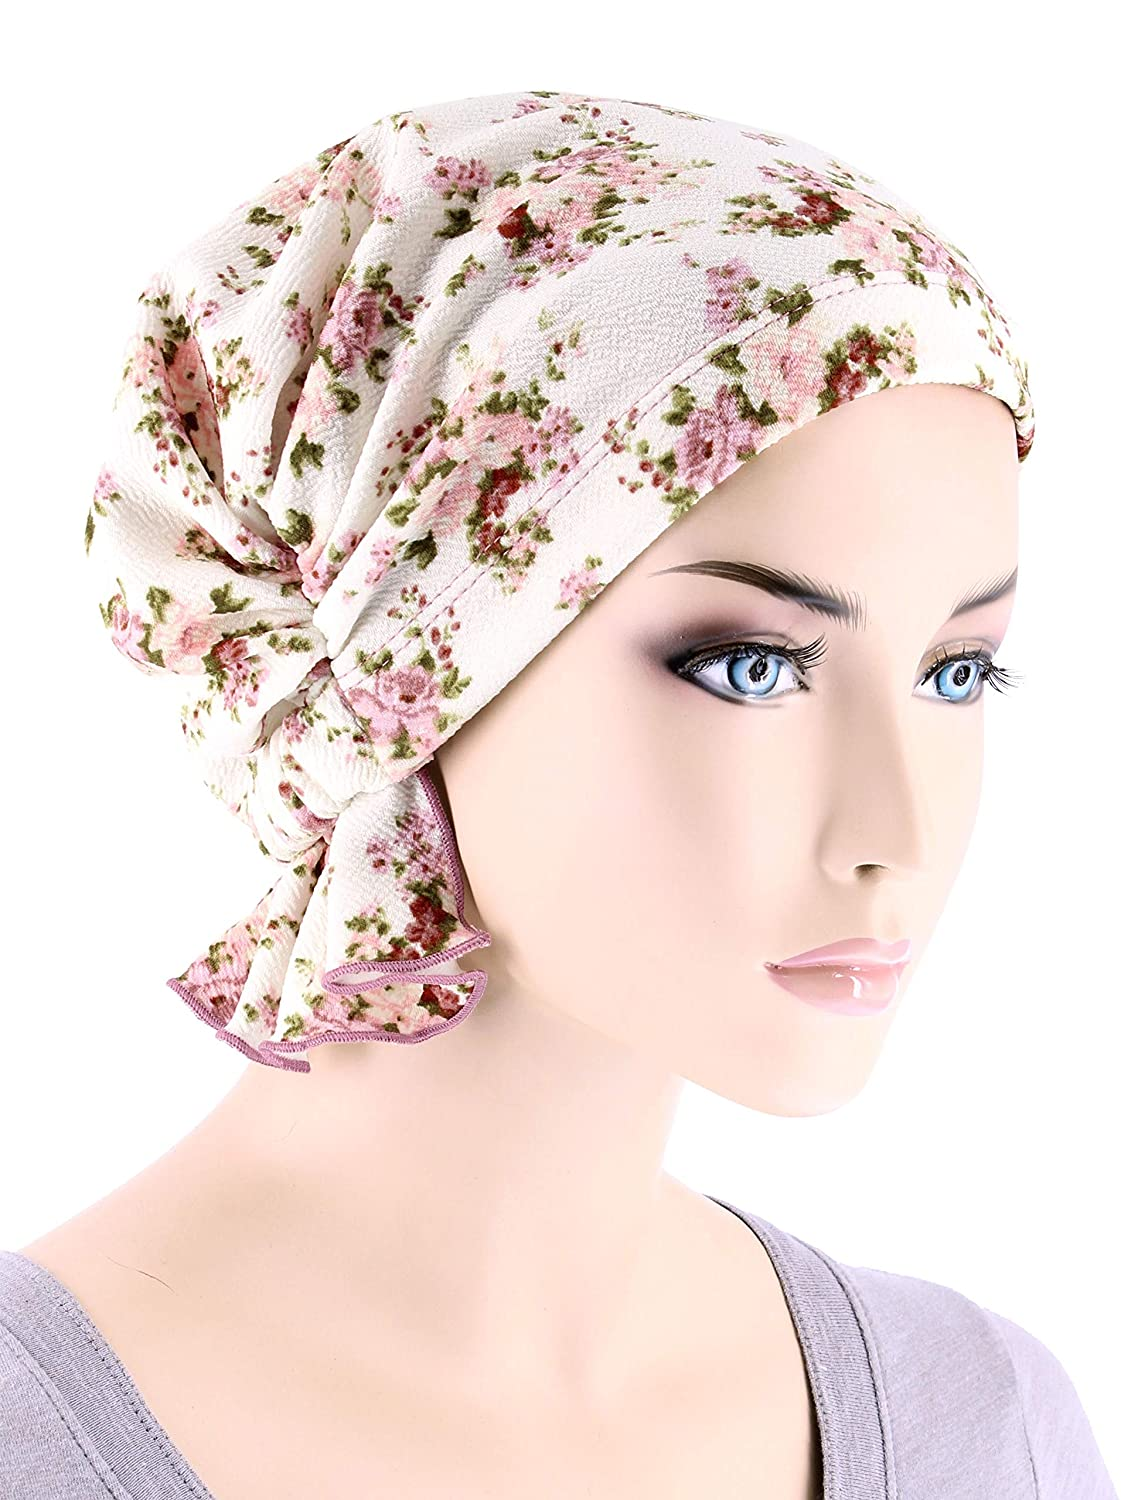 90f5aea7882 Turban Plus The Abbey Cap in Poly Knit Chemo Caps Cancer Hats for ...